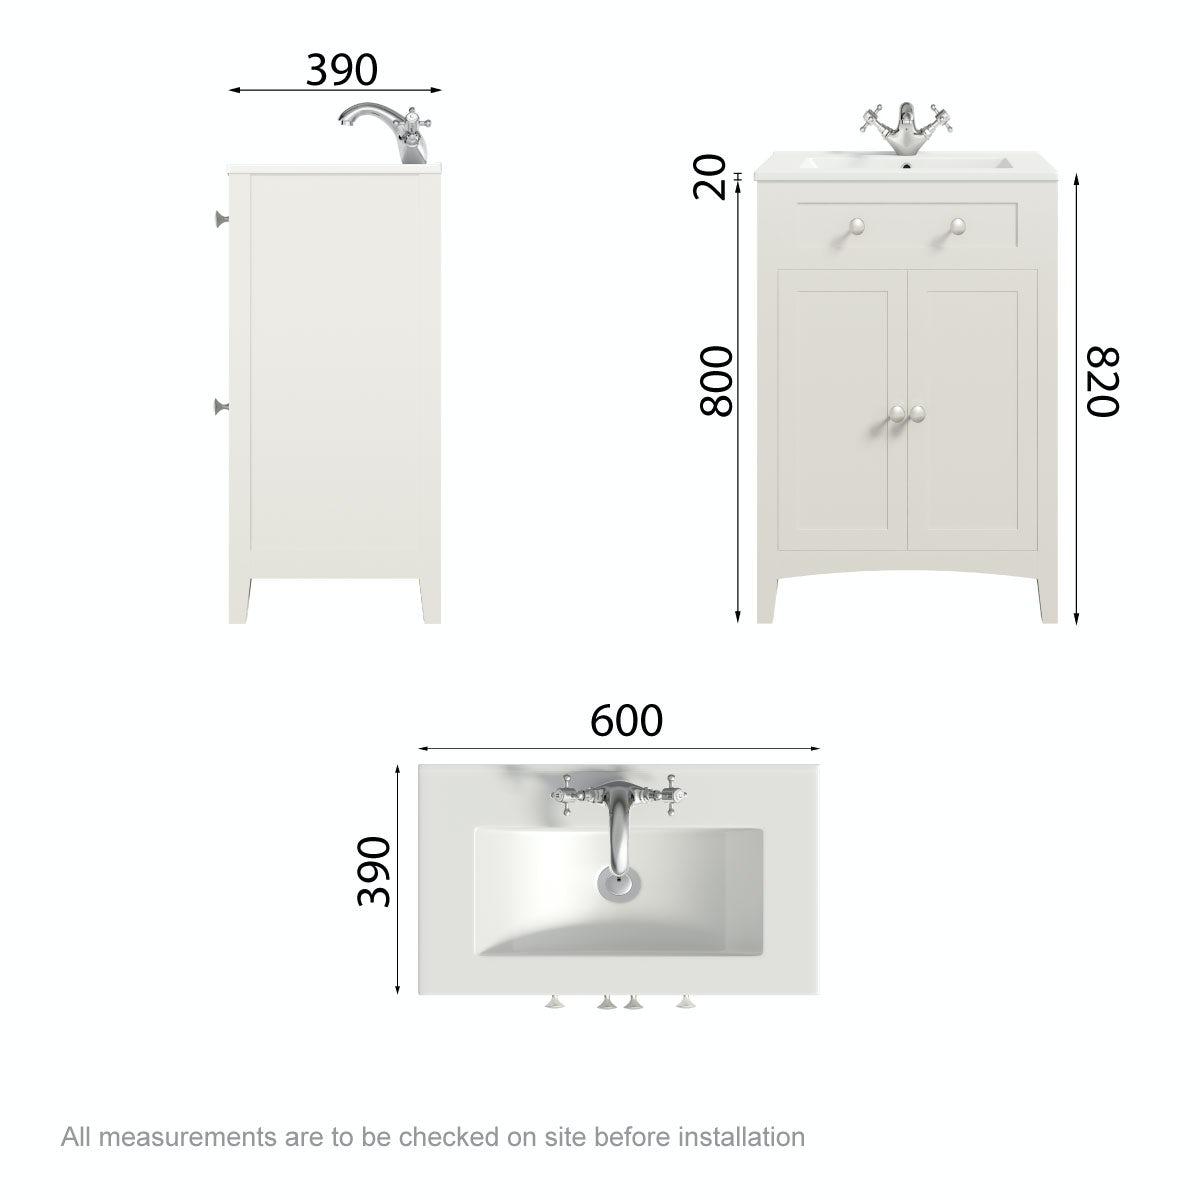 Dimensions for The Bath Co. Camberley ivory vanity unit with basin 600mm